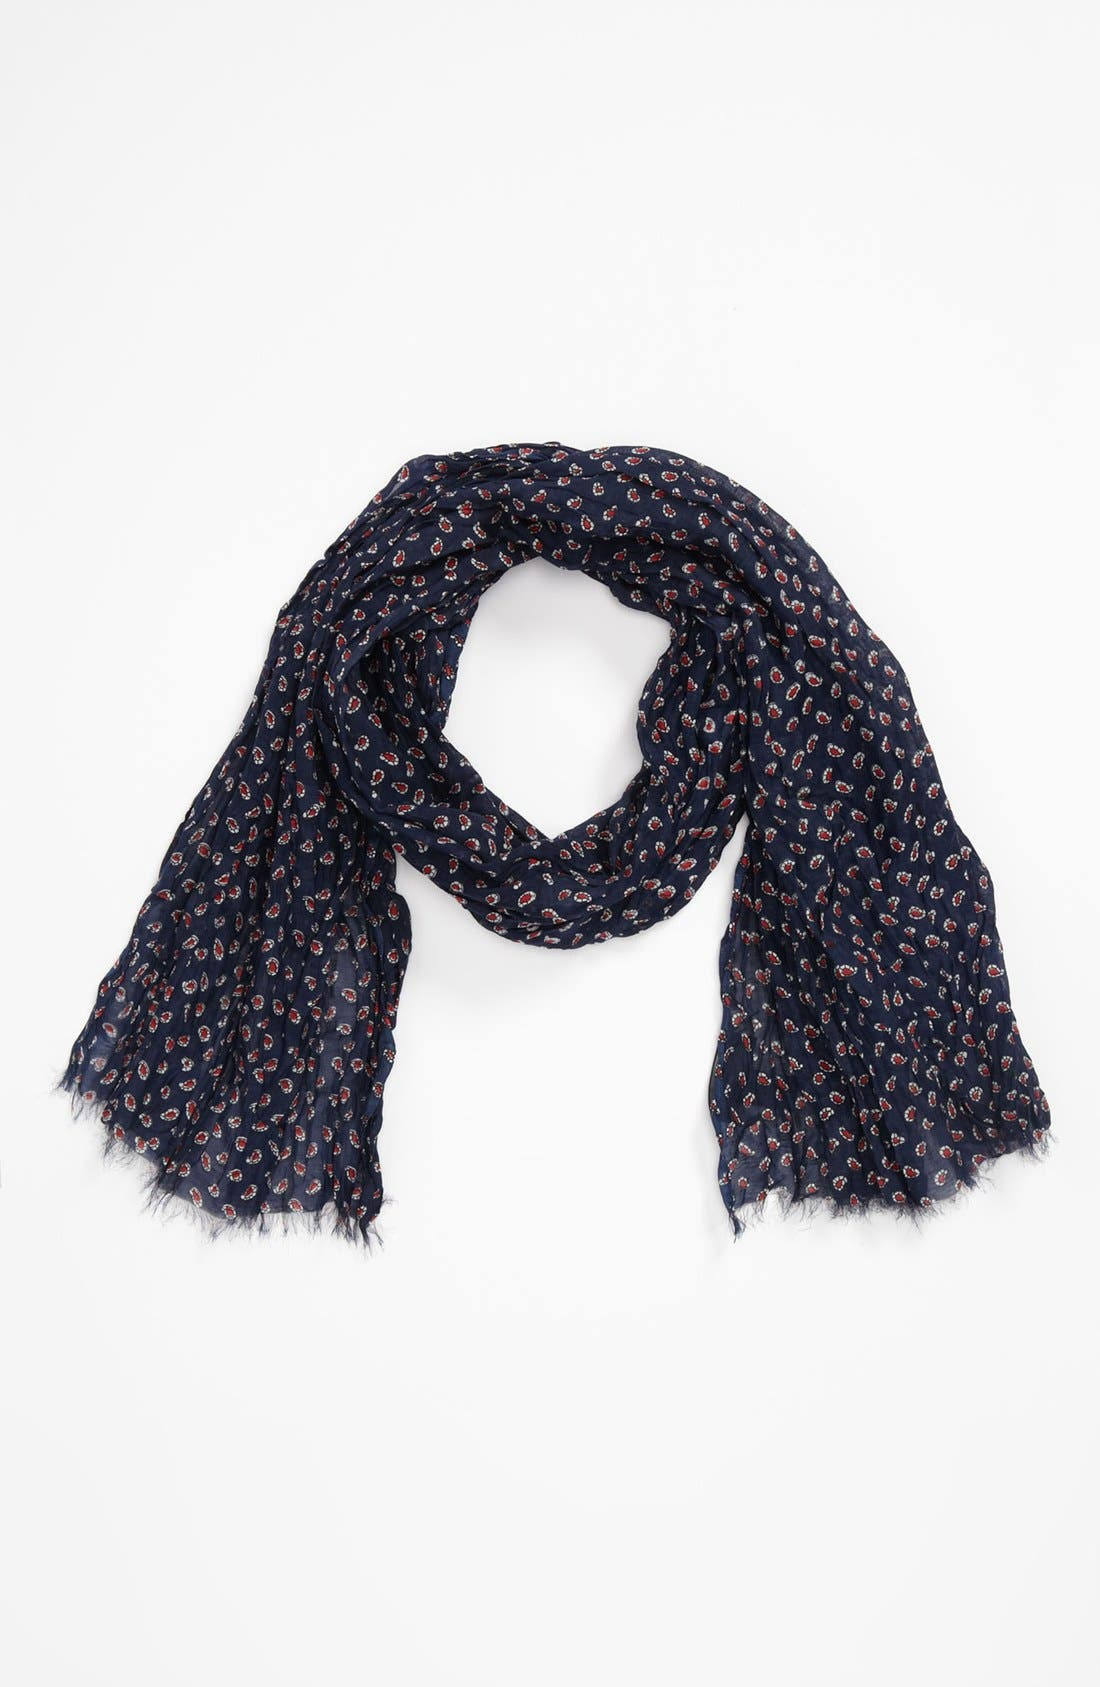 Main Image - Paul Smith Accessories Paisley Scarf